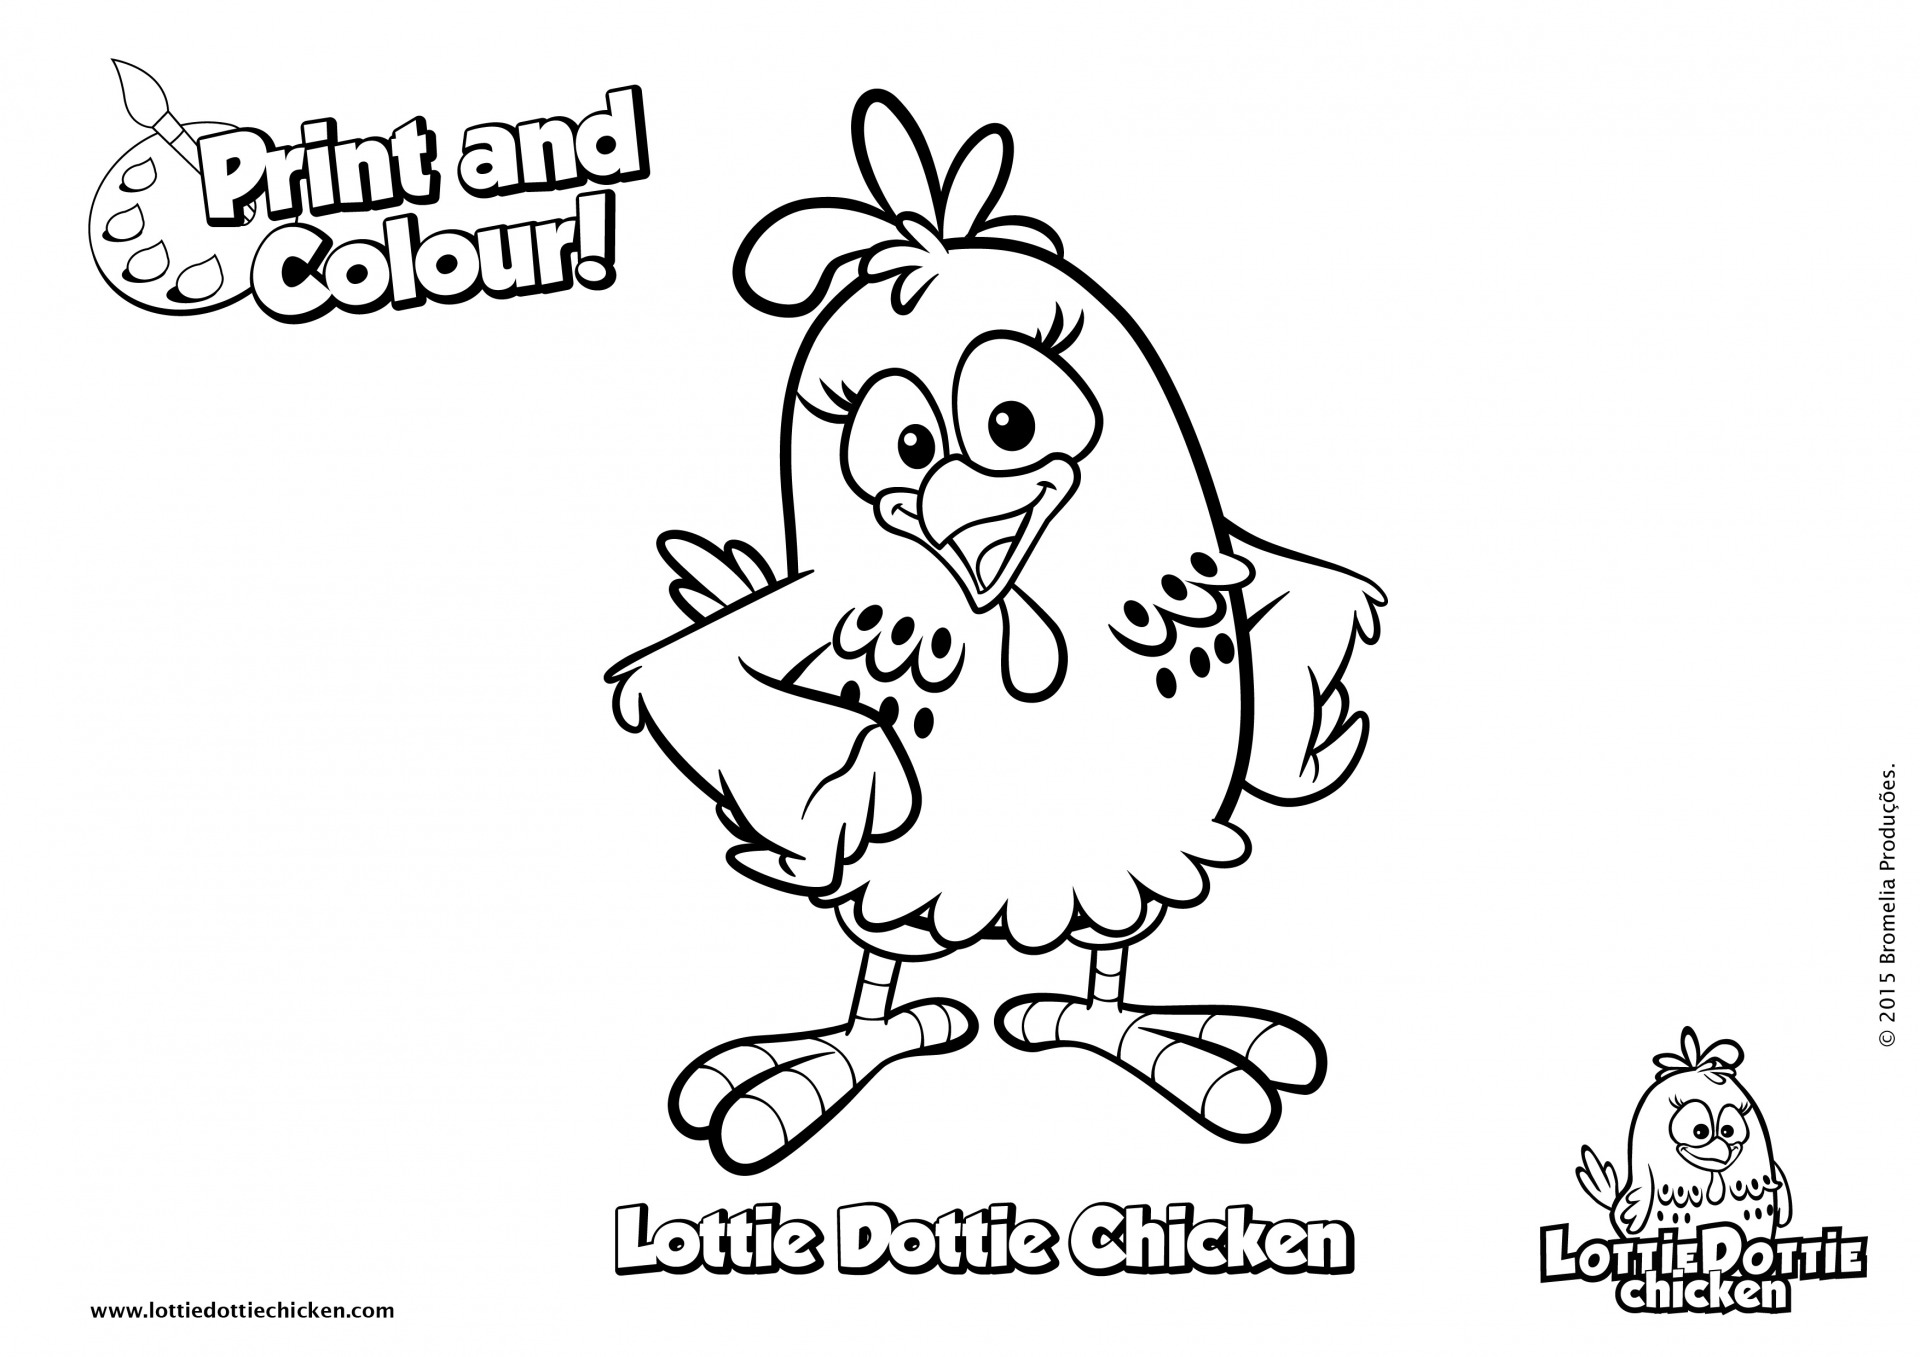 Coloring pages - Lottie Dottie Chicken Official Website